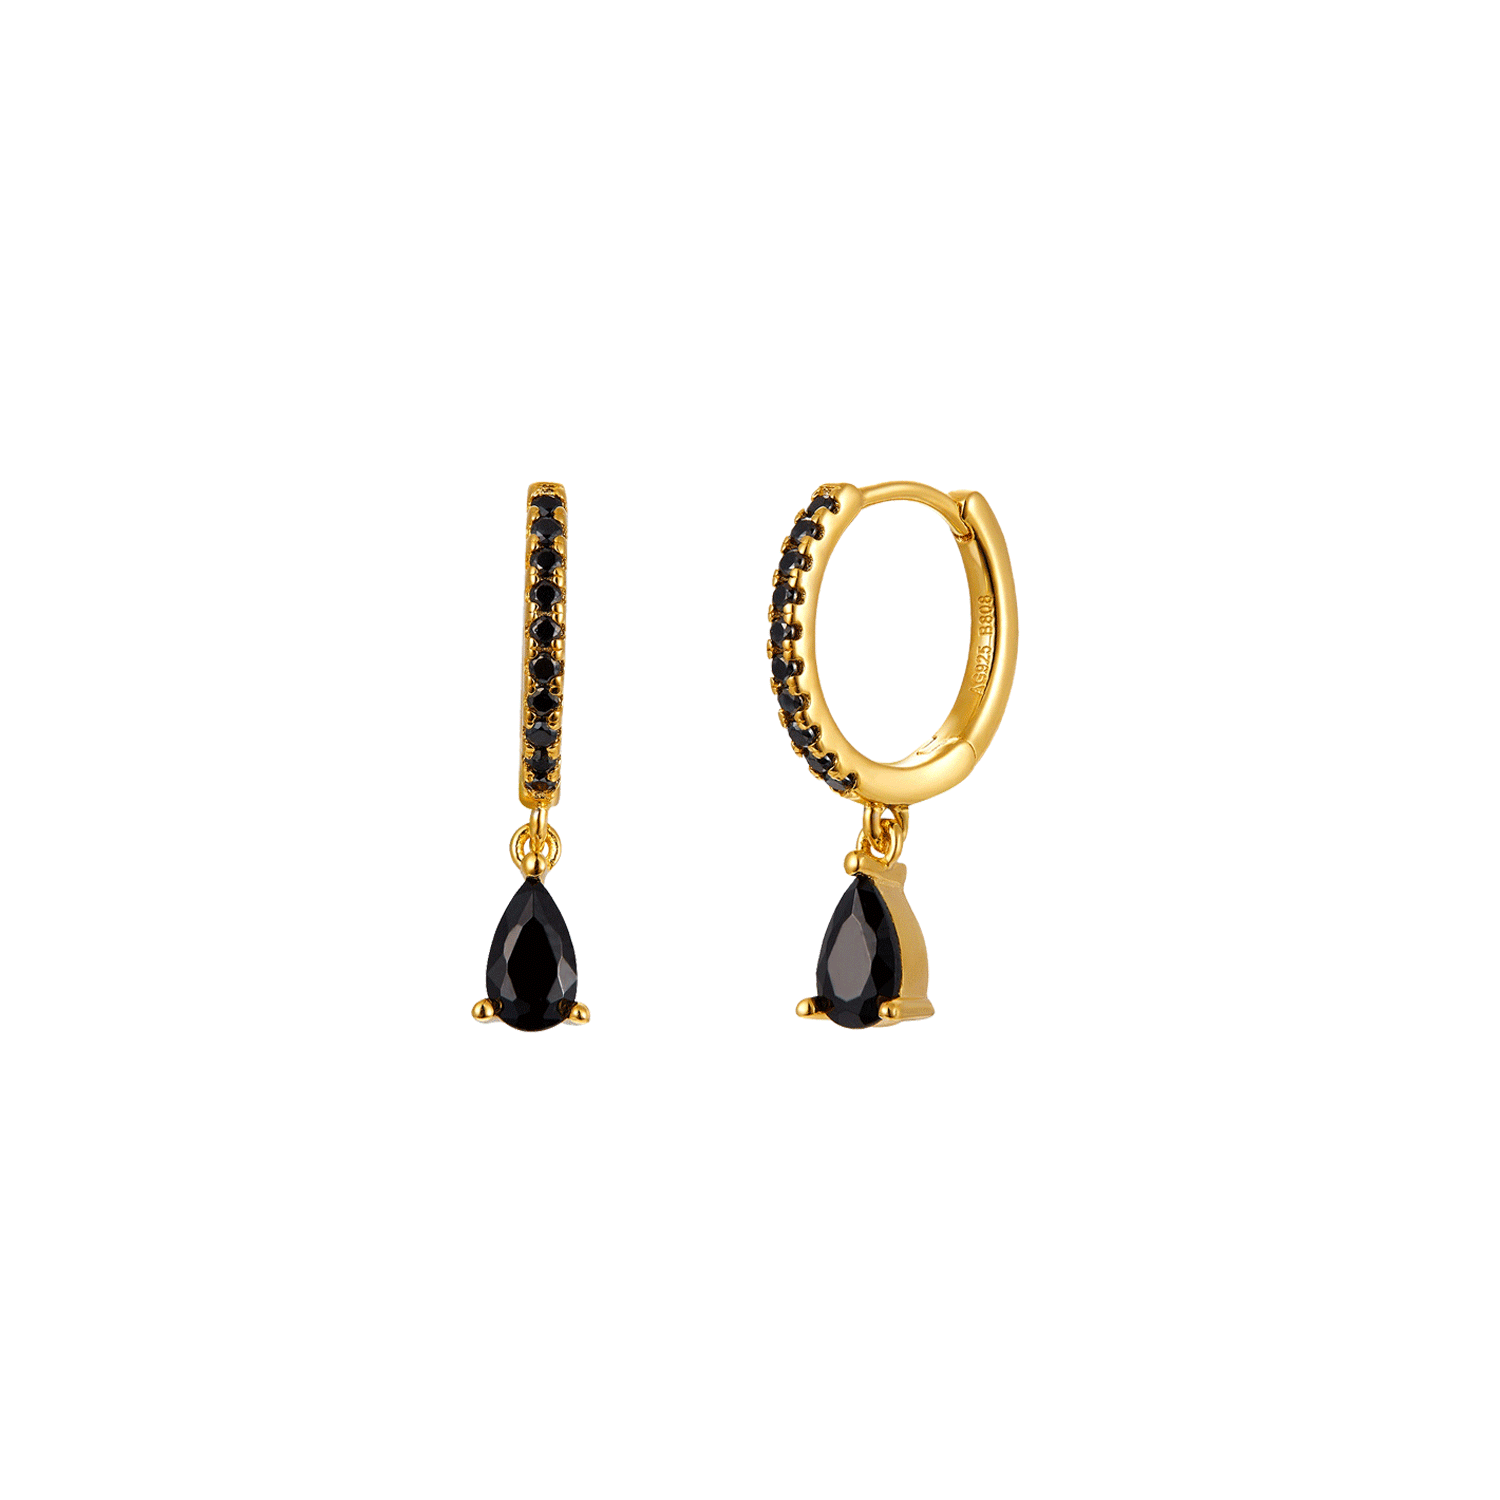 Black Emotion Gold Earring